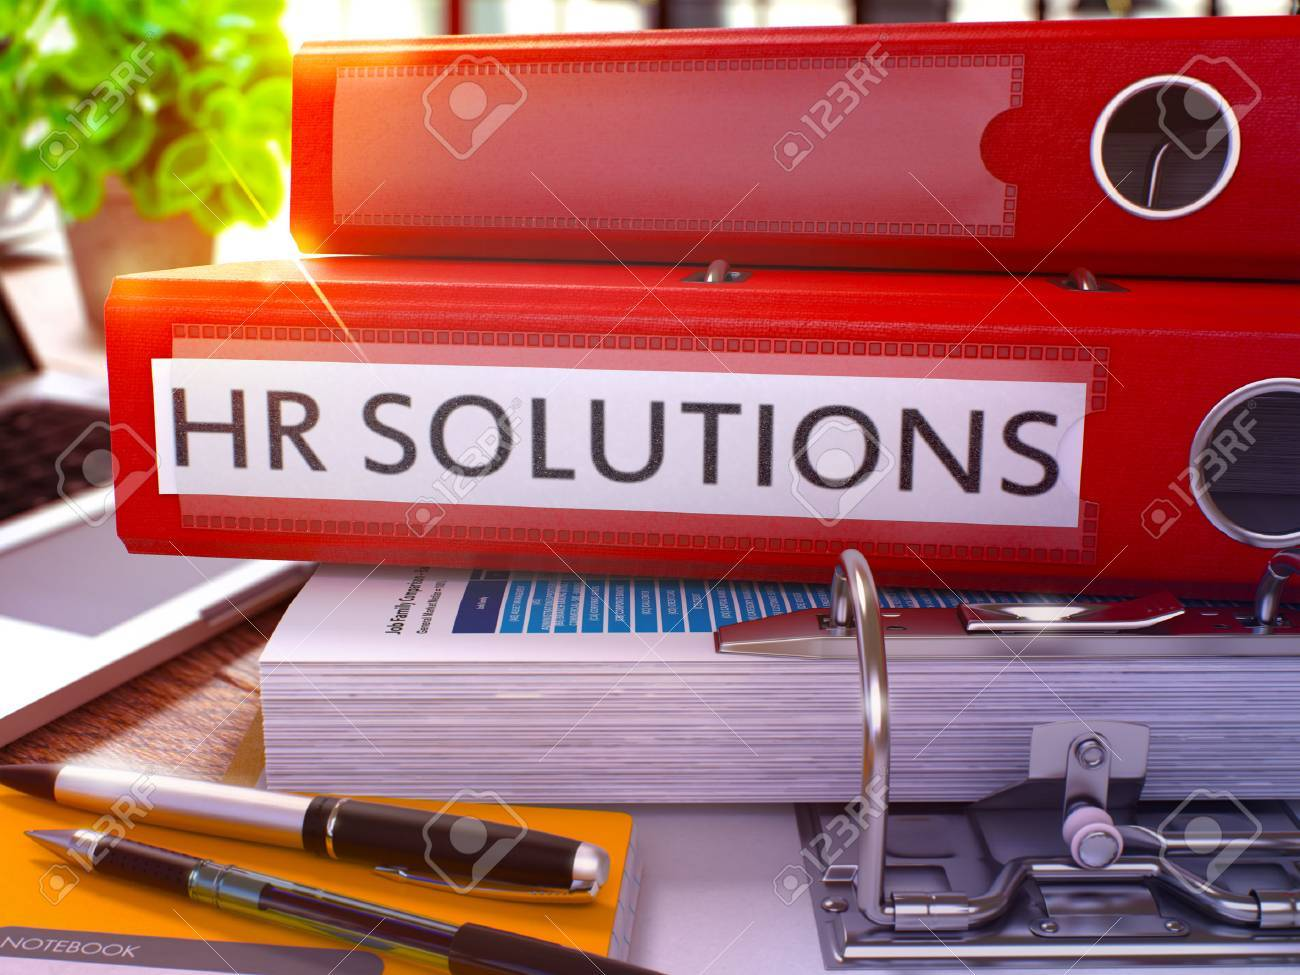 Red Ring Binder with Inscription HR - Human Resource - Solutions on Background of Working Table with Office Supplies and Laptop. HR Solutions Business Concept on Blurred Background. 3D Render. Standard-Bild - 54368311